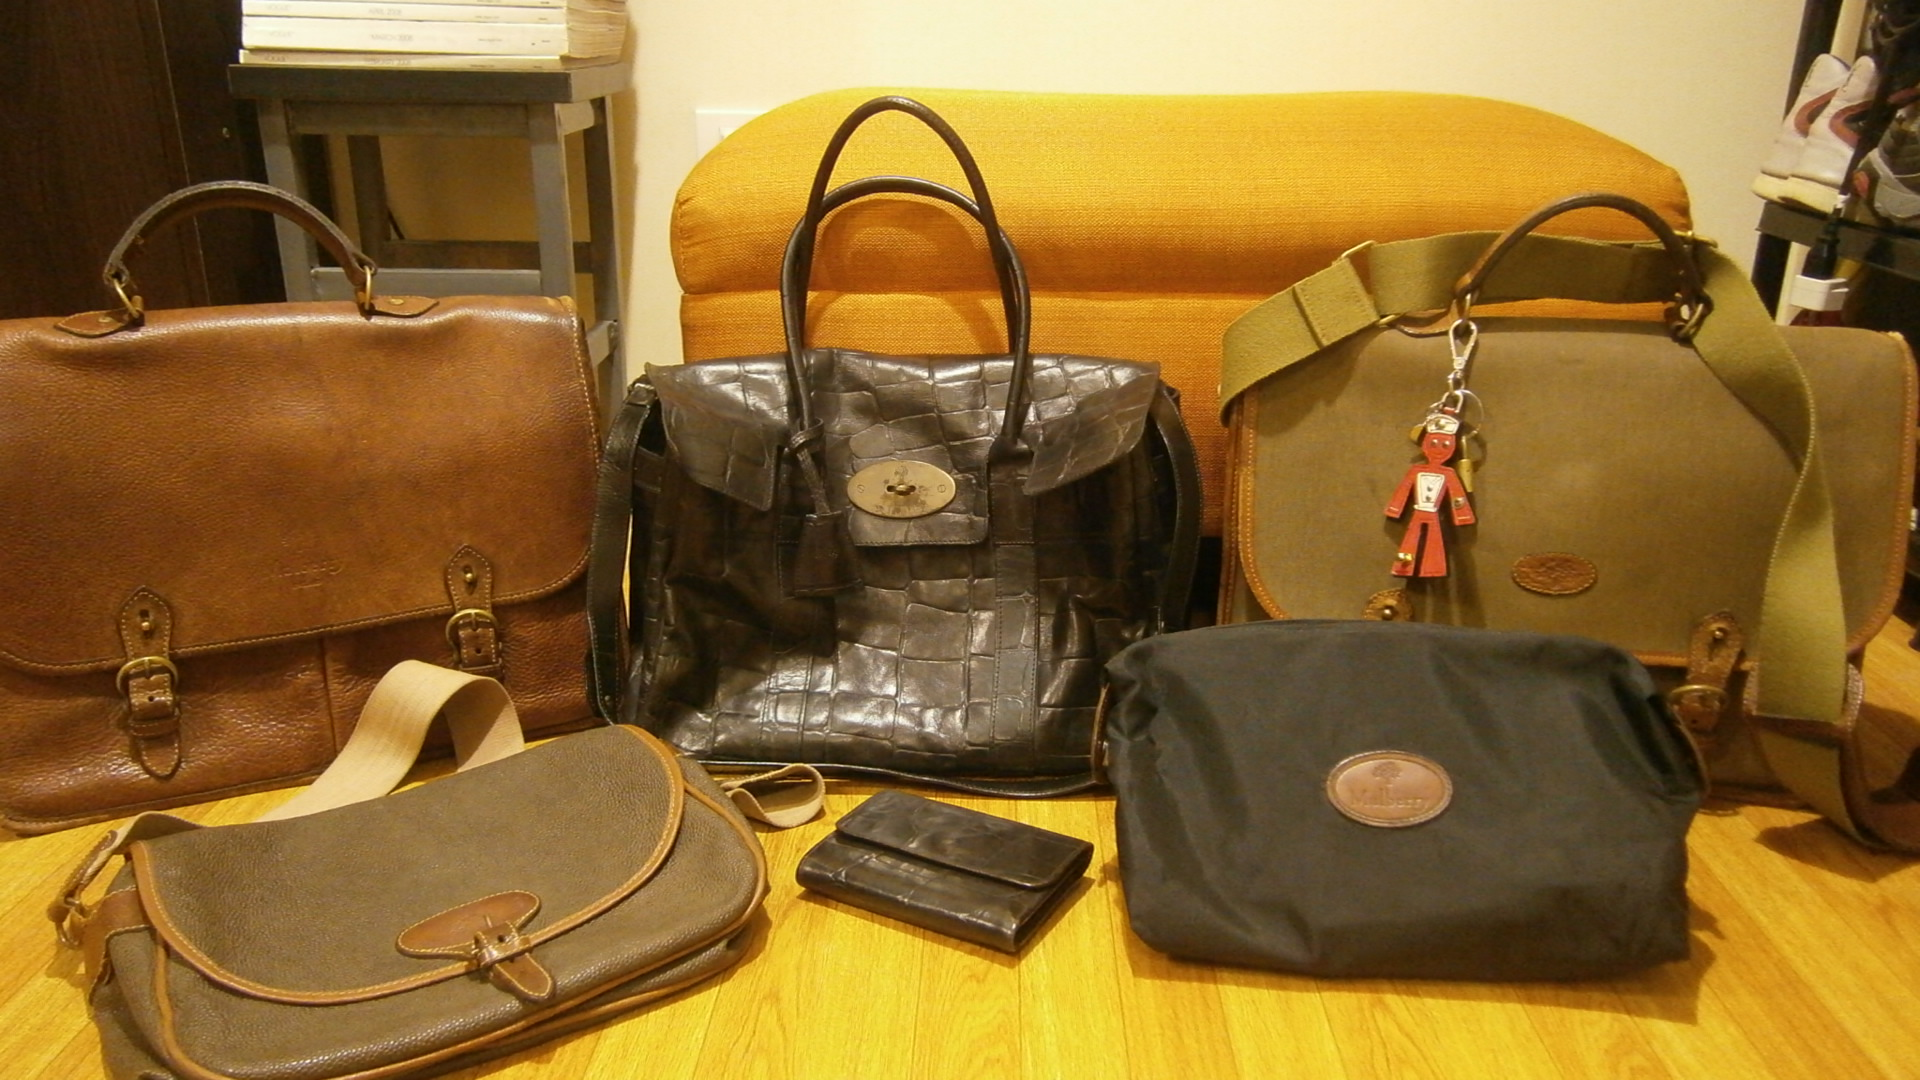 Mulberry family portrait! Mulberry Bayswater, Mulberry wexford messenger, Mulberry wexford and canvas messenger, Mulberry scotchgrain sling, Mulberry nylon pouch, Mulberry congo leather agenda - Manila, Philippines